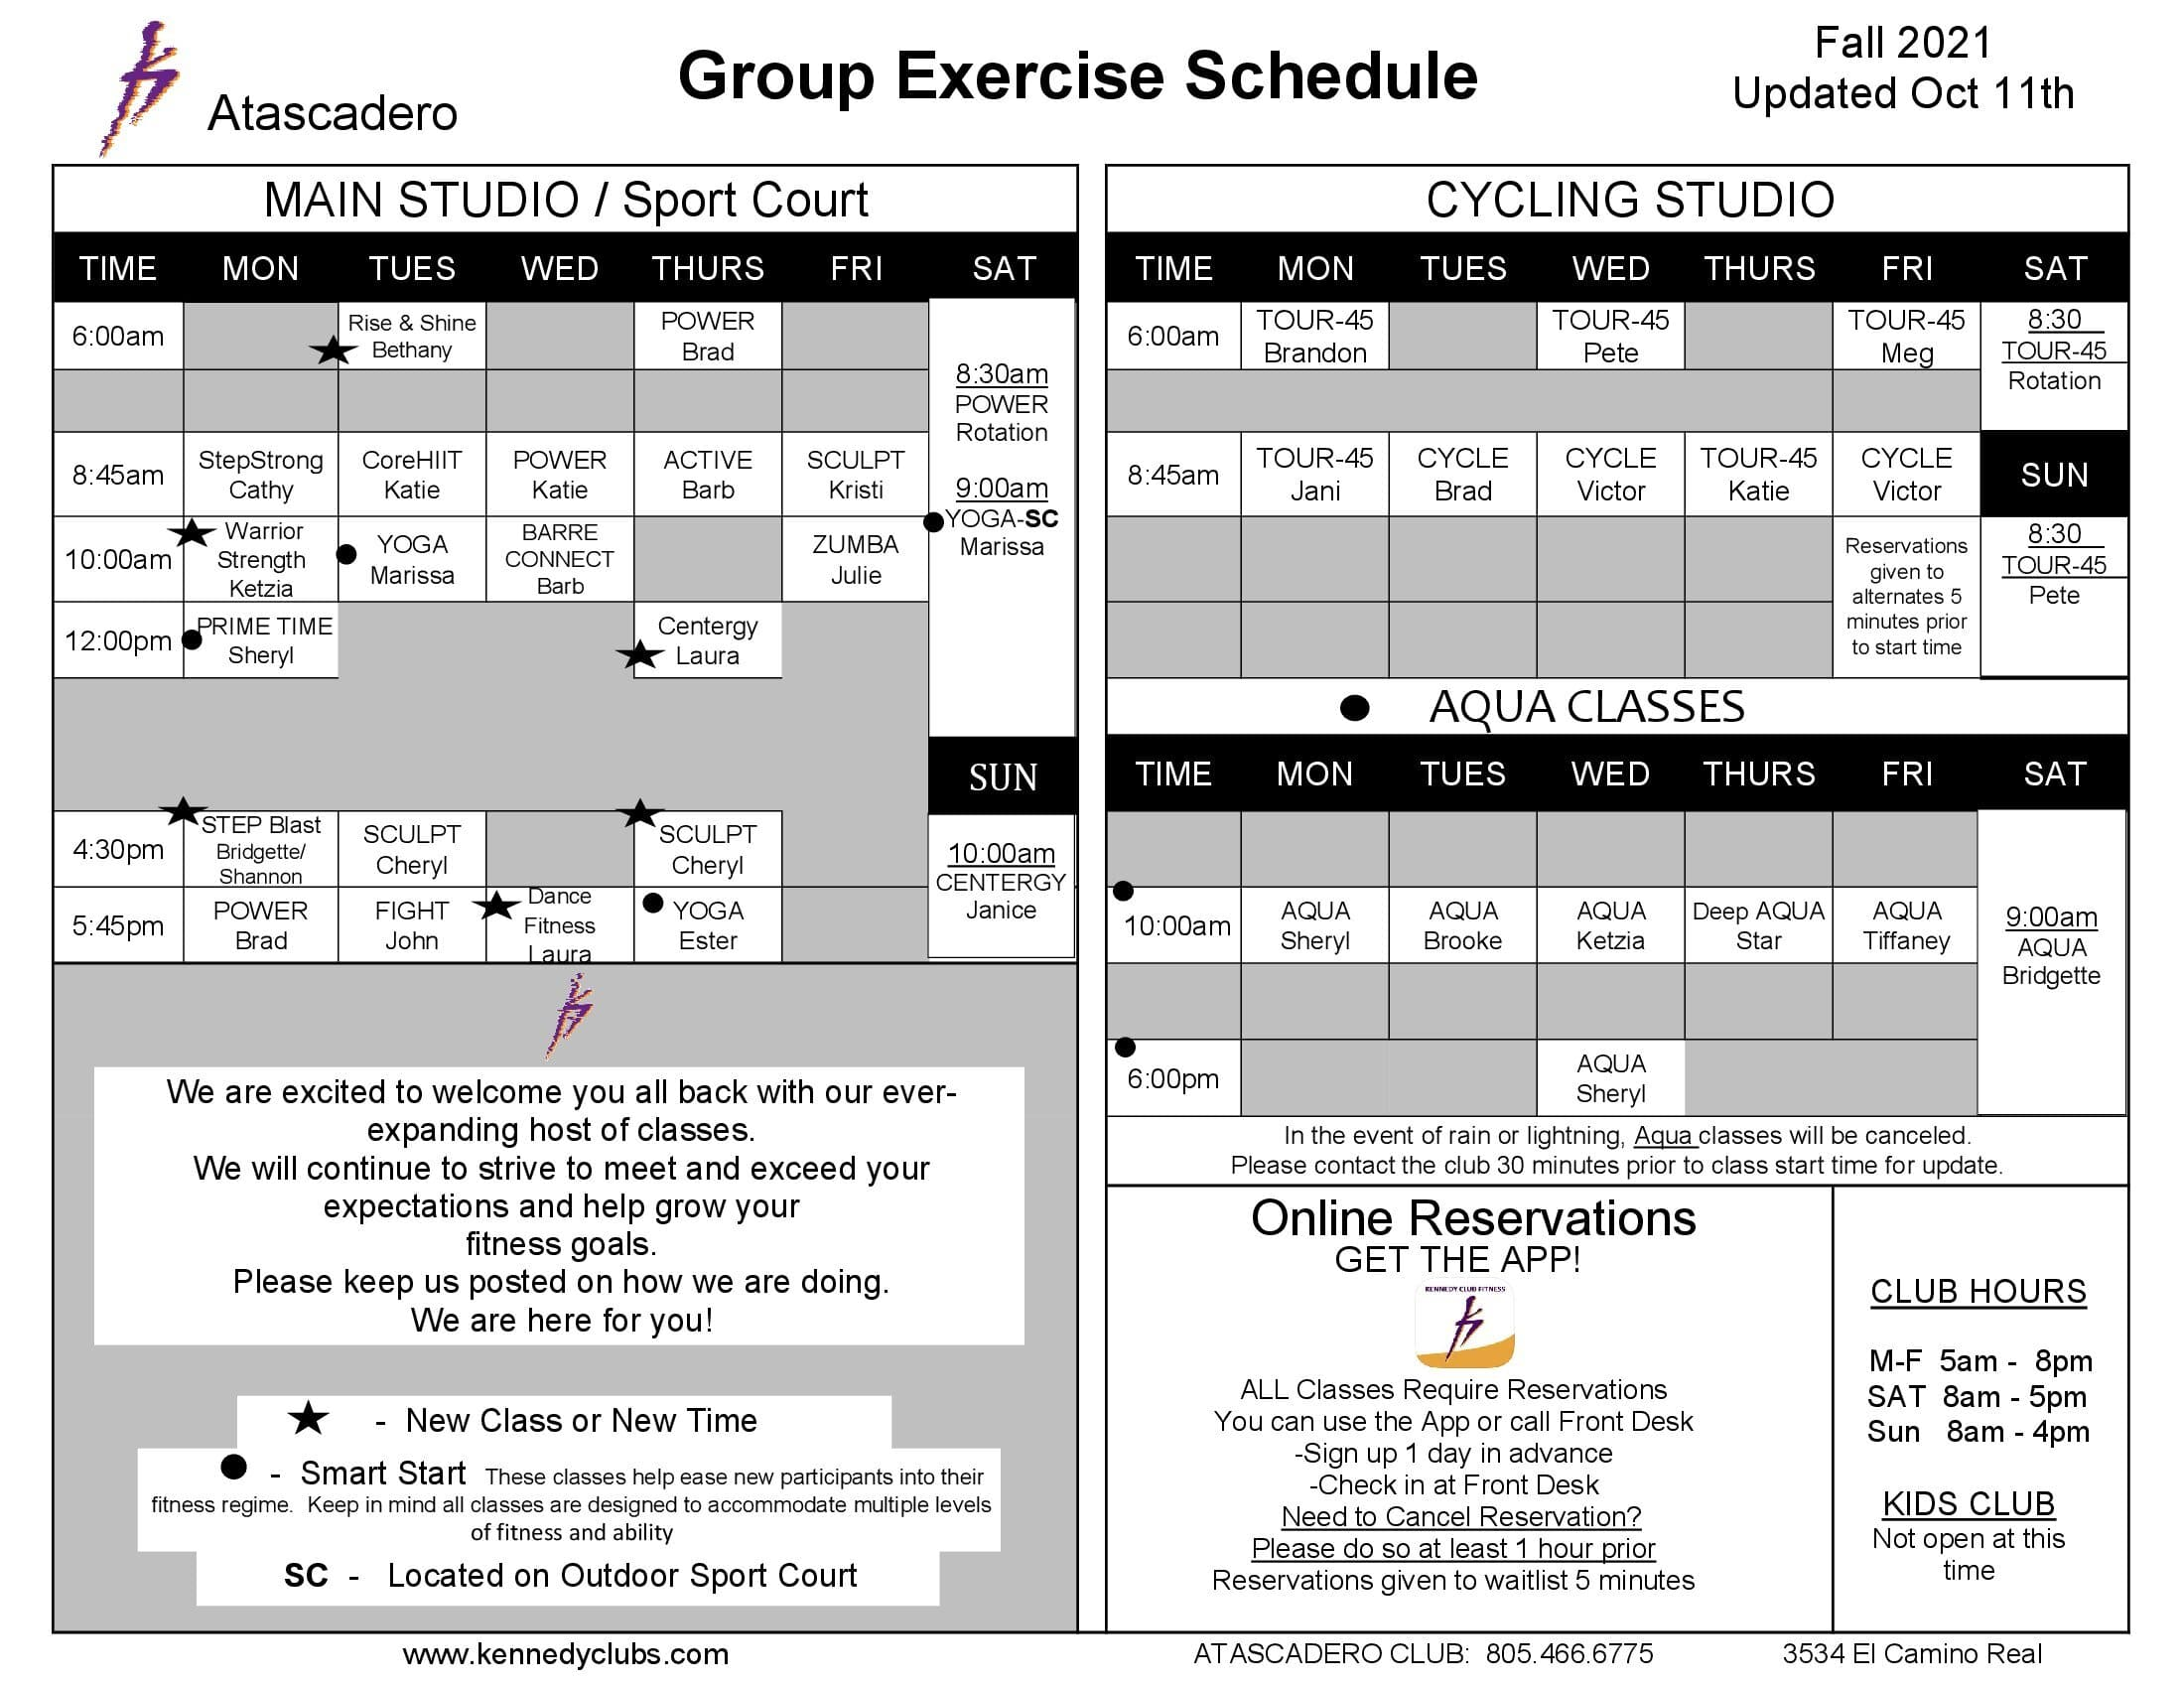 Kennedy Club Fitness Atascadero Group Exercise Schedule